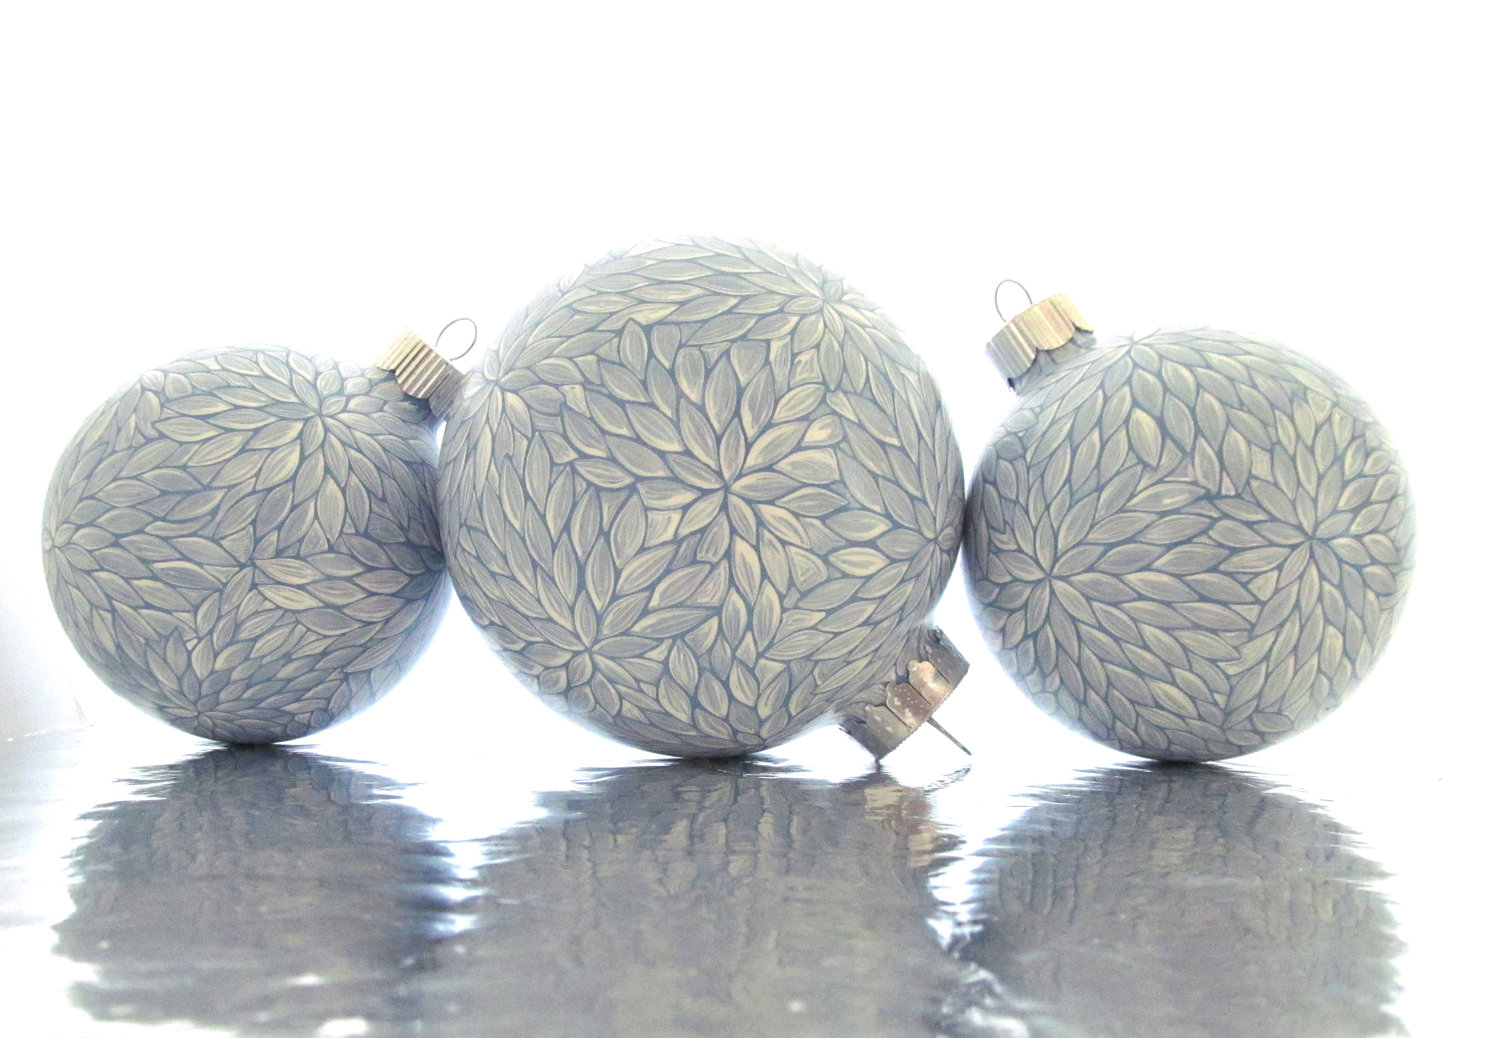 Handmade glass christmas ornaments - 4 Set Of 3 Blue And White Painted Glass Ornament